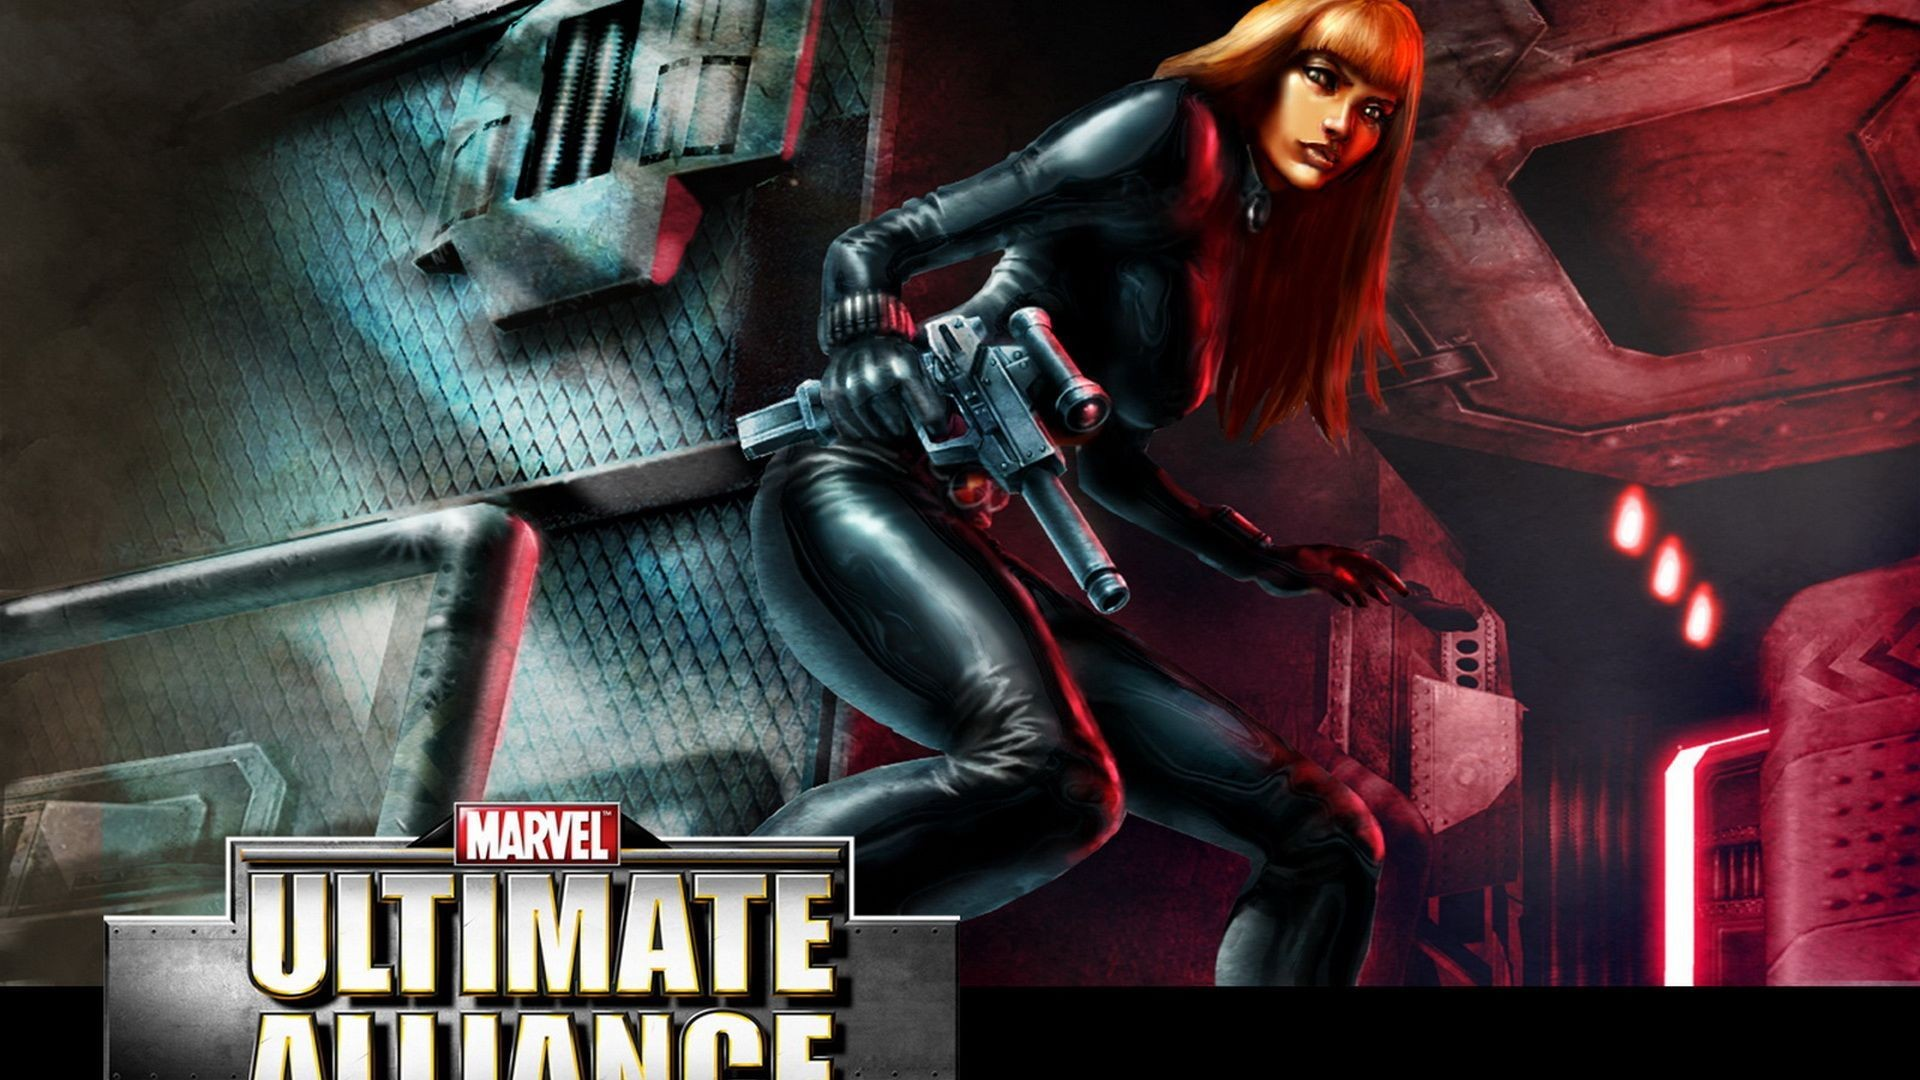 General 1920x1080 Black Widow Ultimate Alliance redhead Marvel Comics gun superheroines girls with guns